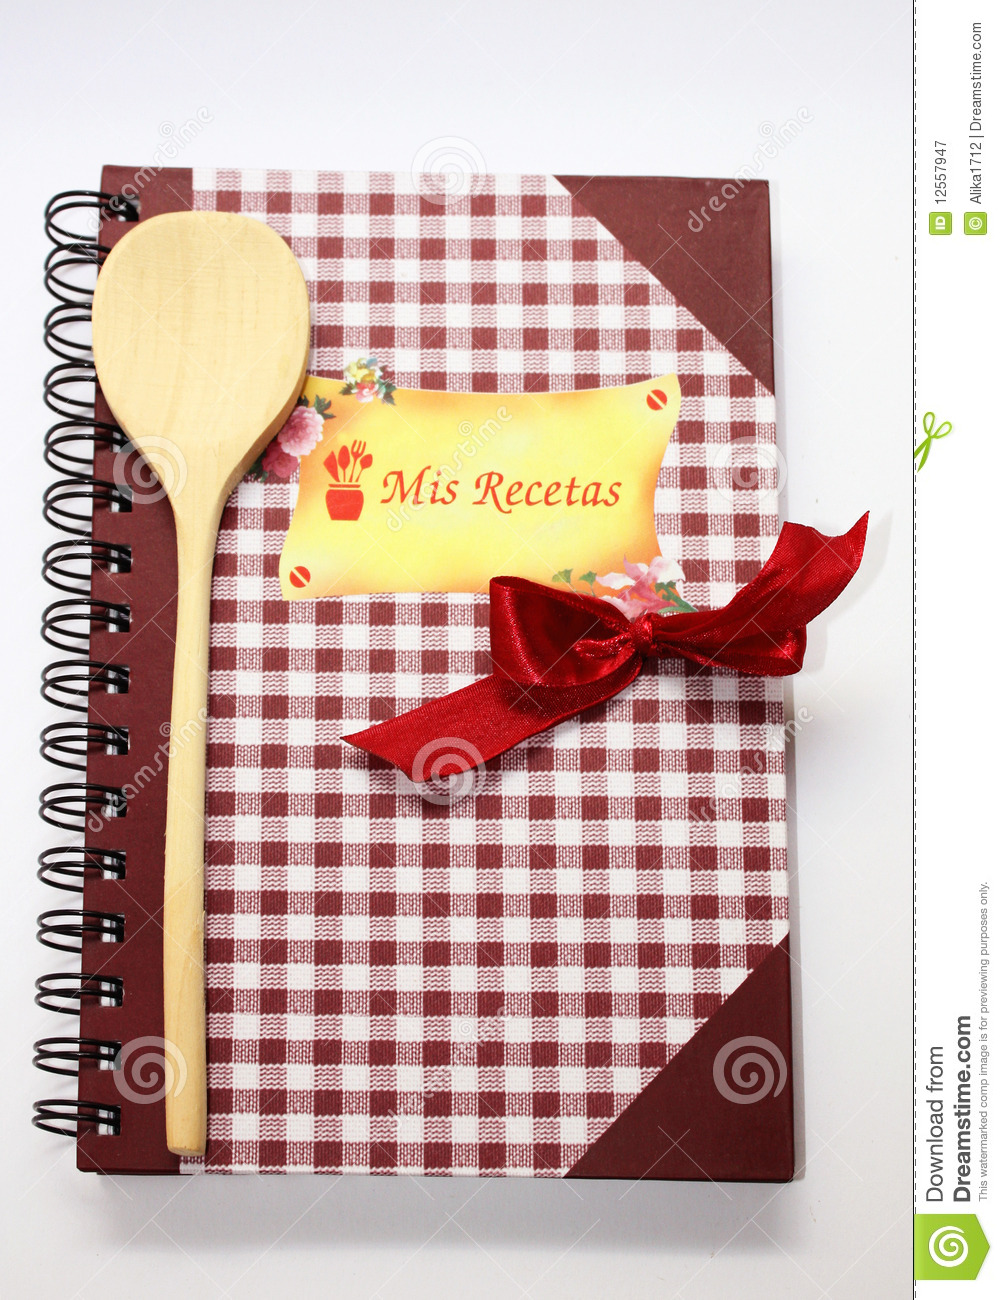 Free Cookbook Clipart Images amp Pictures Becuo